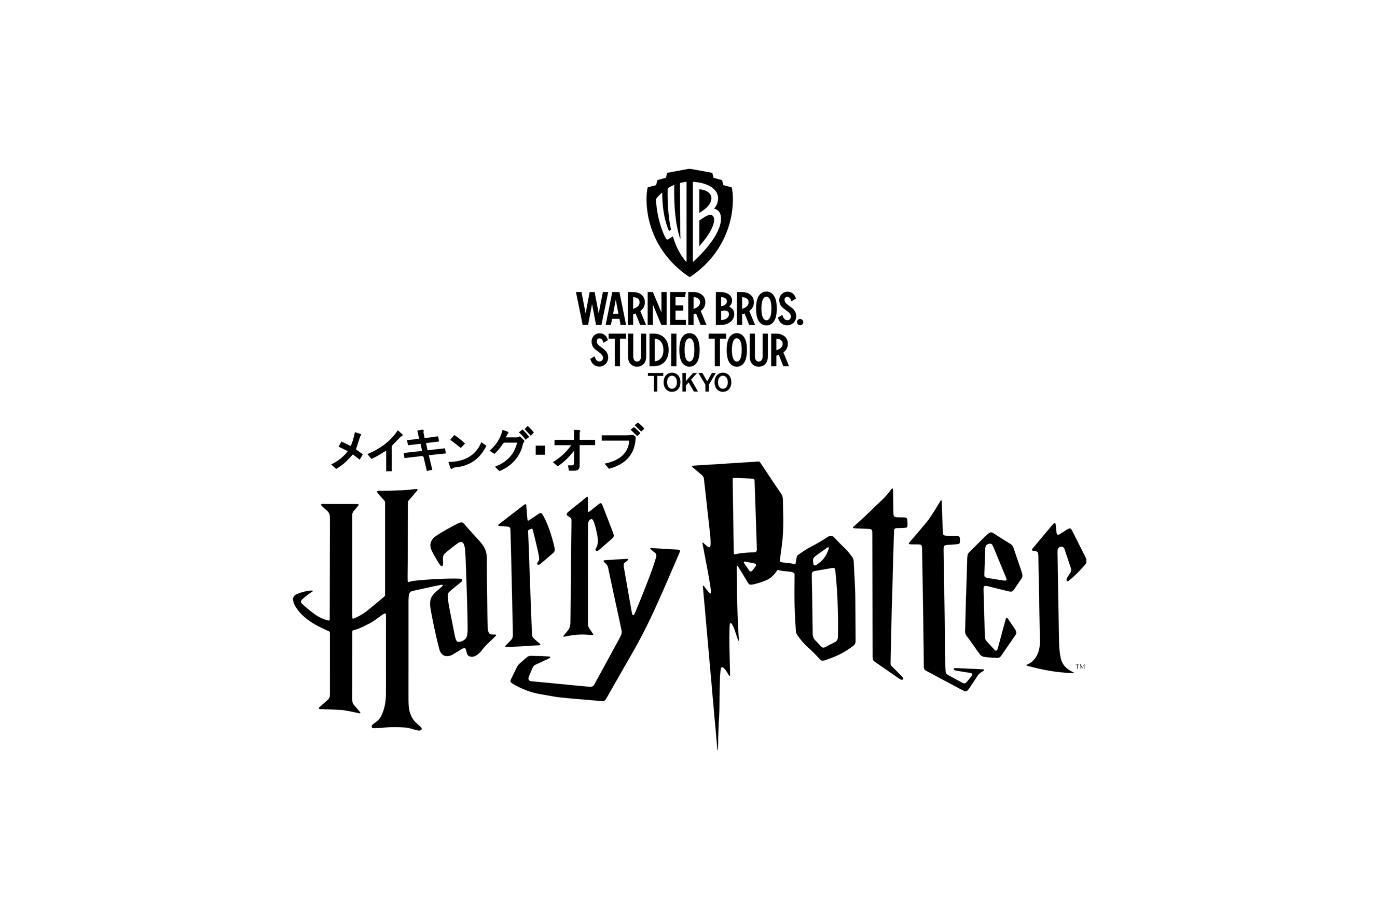 'Wizarding World' and all related names, characters and indicia are trademarks of and -Warner Bros. Entertainment Inc.  (c) Wizarding World publishing rights (c) J.K. Rowling.